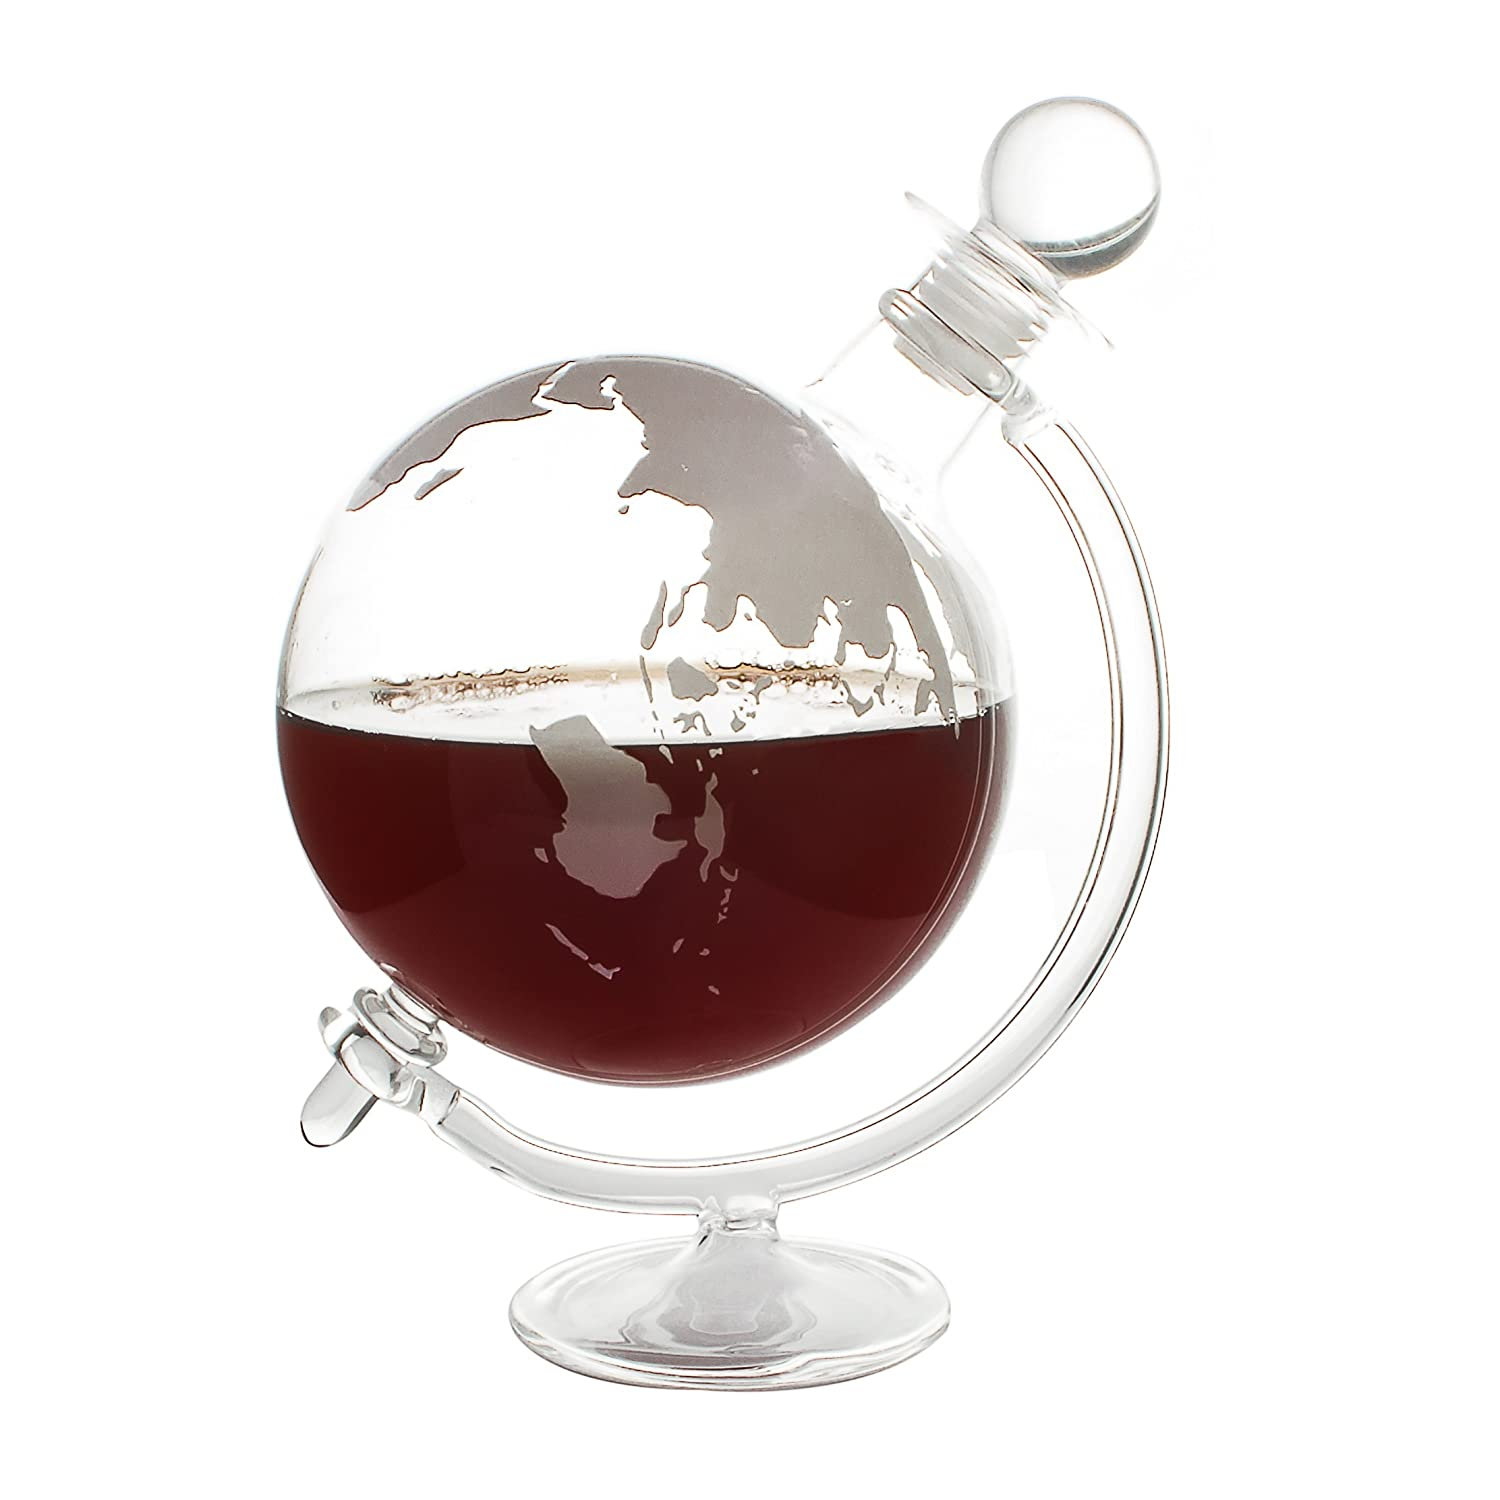 CKB Ltd® GLOBE DECANTER With Cradle Holder & Glass Cork Lid- Hand Blown - Ideal For Vodka Whiskey, Scotch, Rum Tequila & More - Holds Up To 750ml